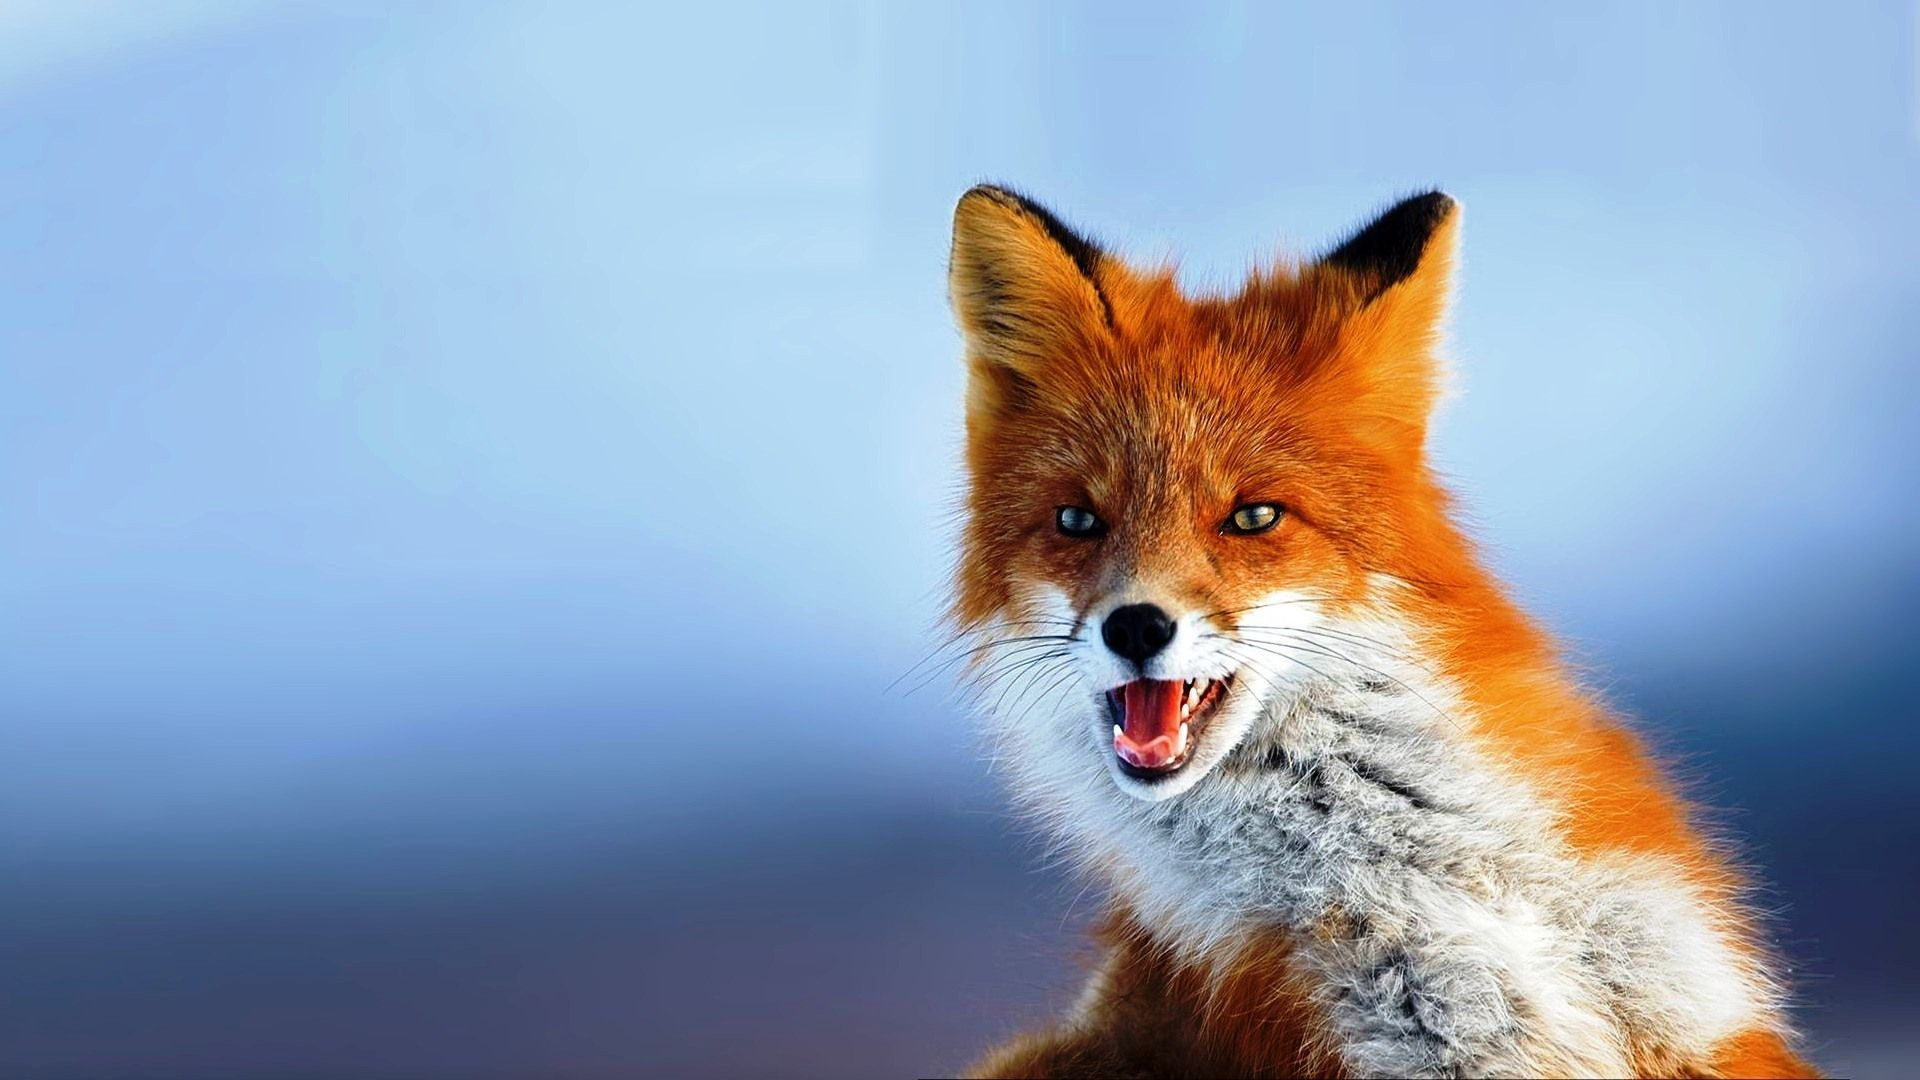 Fox Fondos de pantalla HD | HD Wallpapers Fit | Animales | Zorro mascota, animal